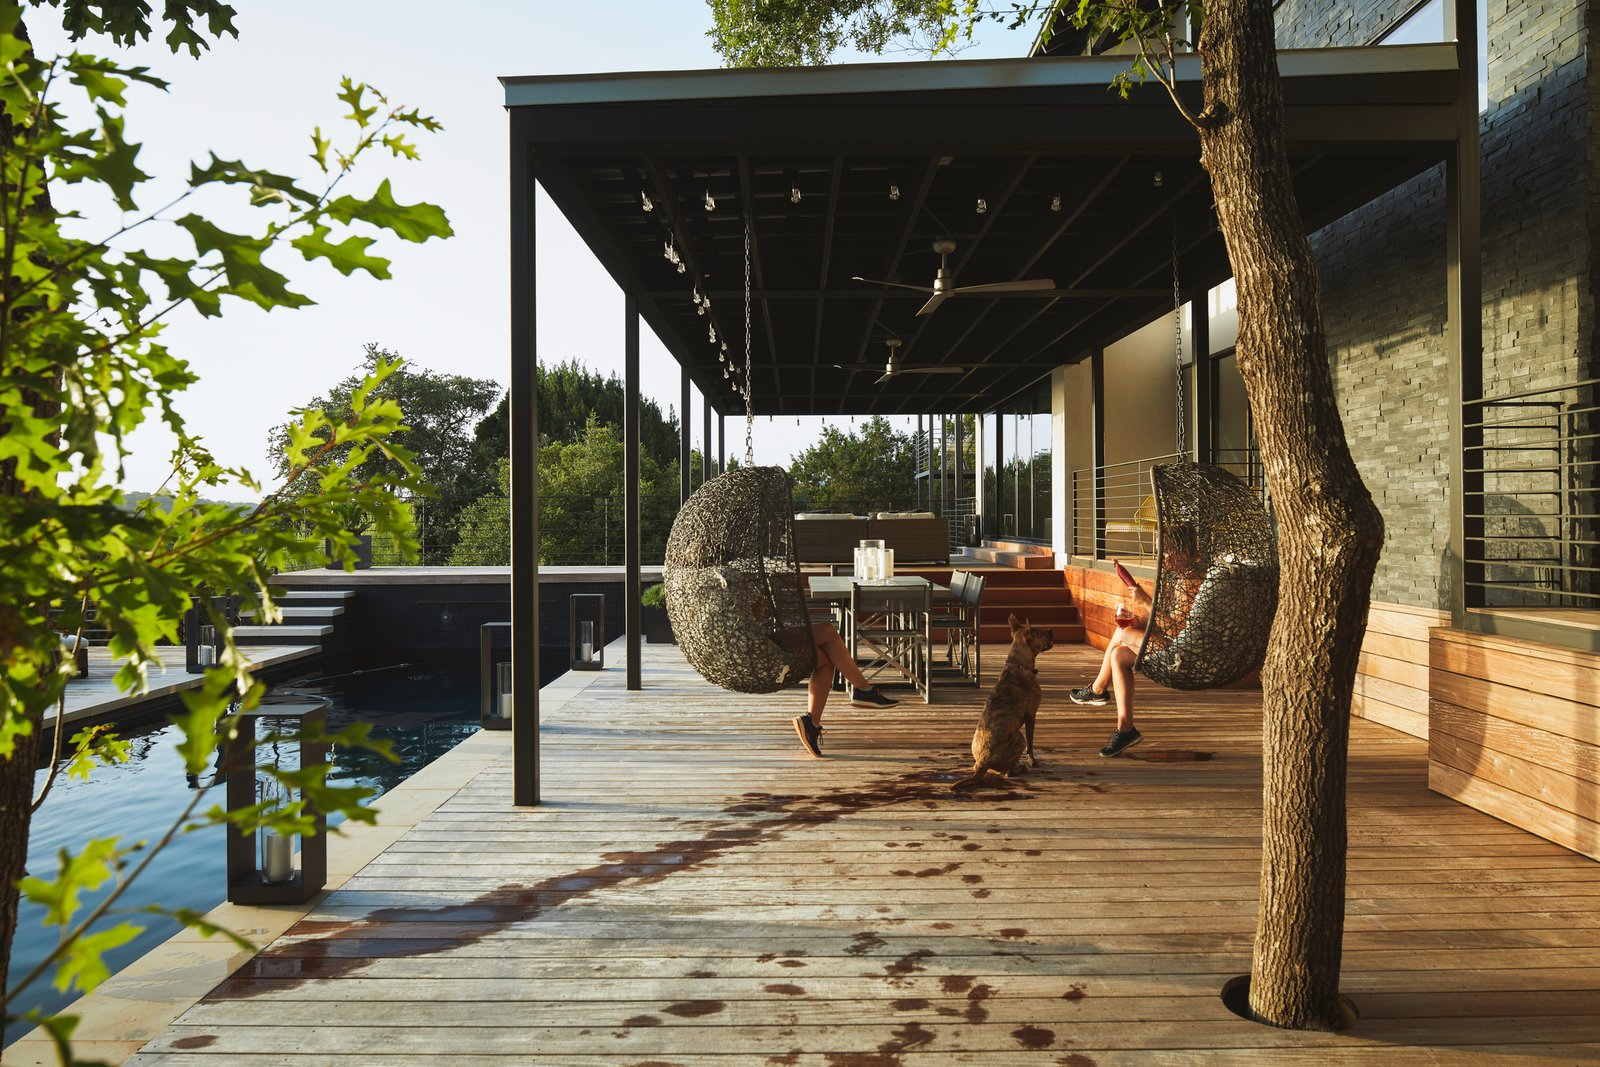 Outdoor, Wood, Back Yard, Large, Metal, Shower, Swimming, Hot Tub, Trees, Landscape, Hanging, and Horizontal Via Media Residence by Matt Fajkus Architecture | Photo by Leonid Furmansky  Outdoor Metal Swimming Photos from Via Media Residence